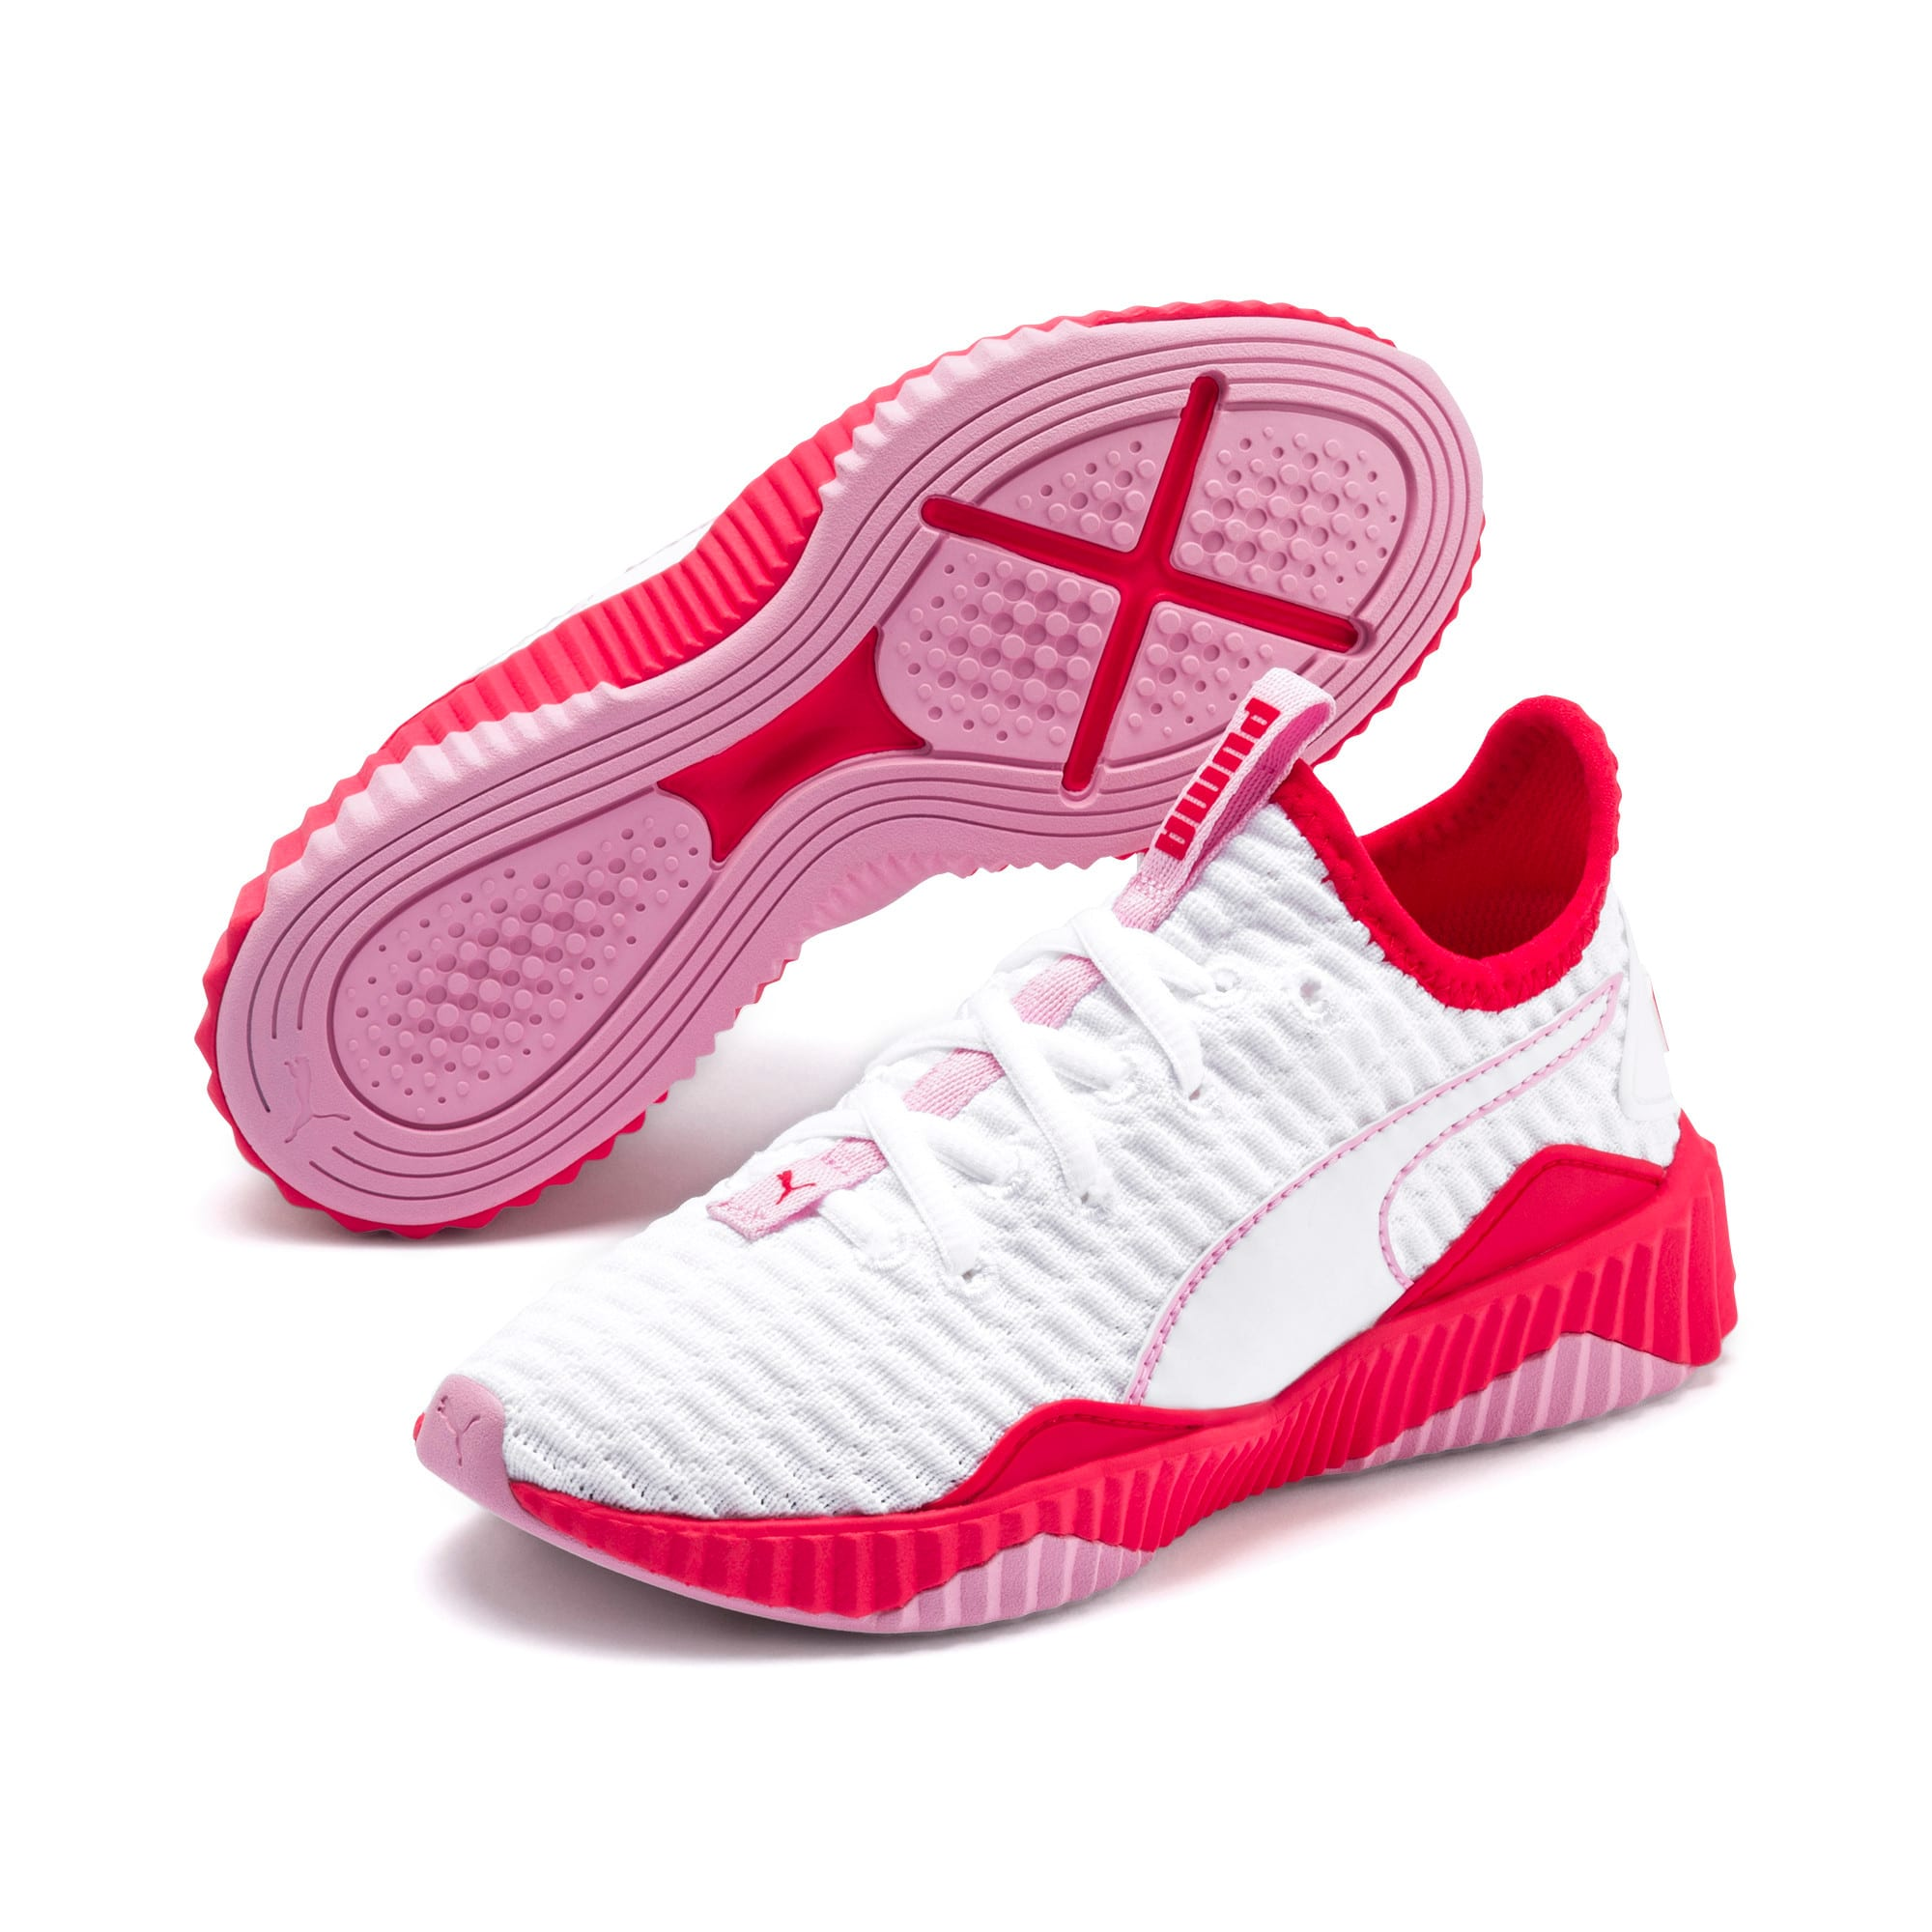 Thumbnail 2 of Defy Girls' Trainers, White-Hibiscus -Pale Pink, medium